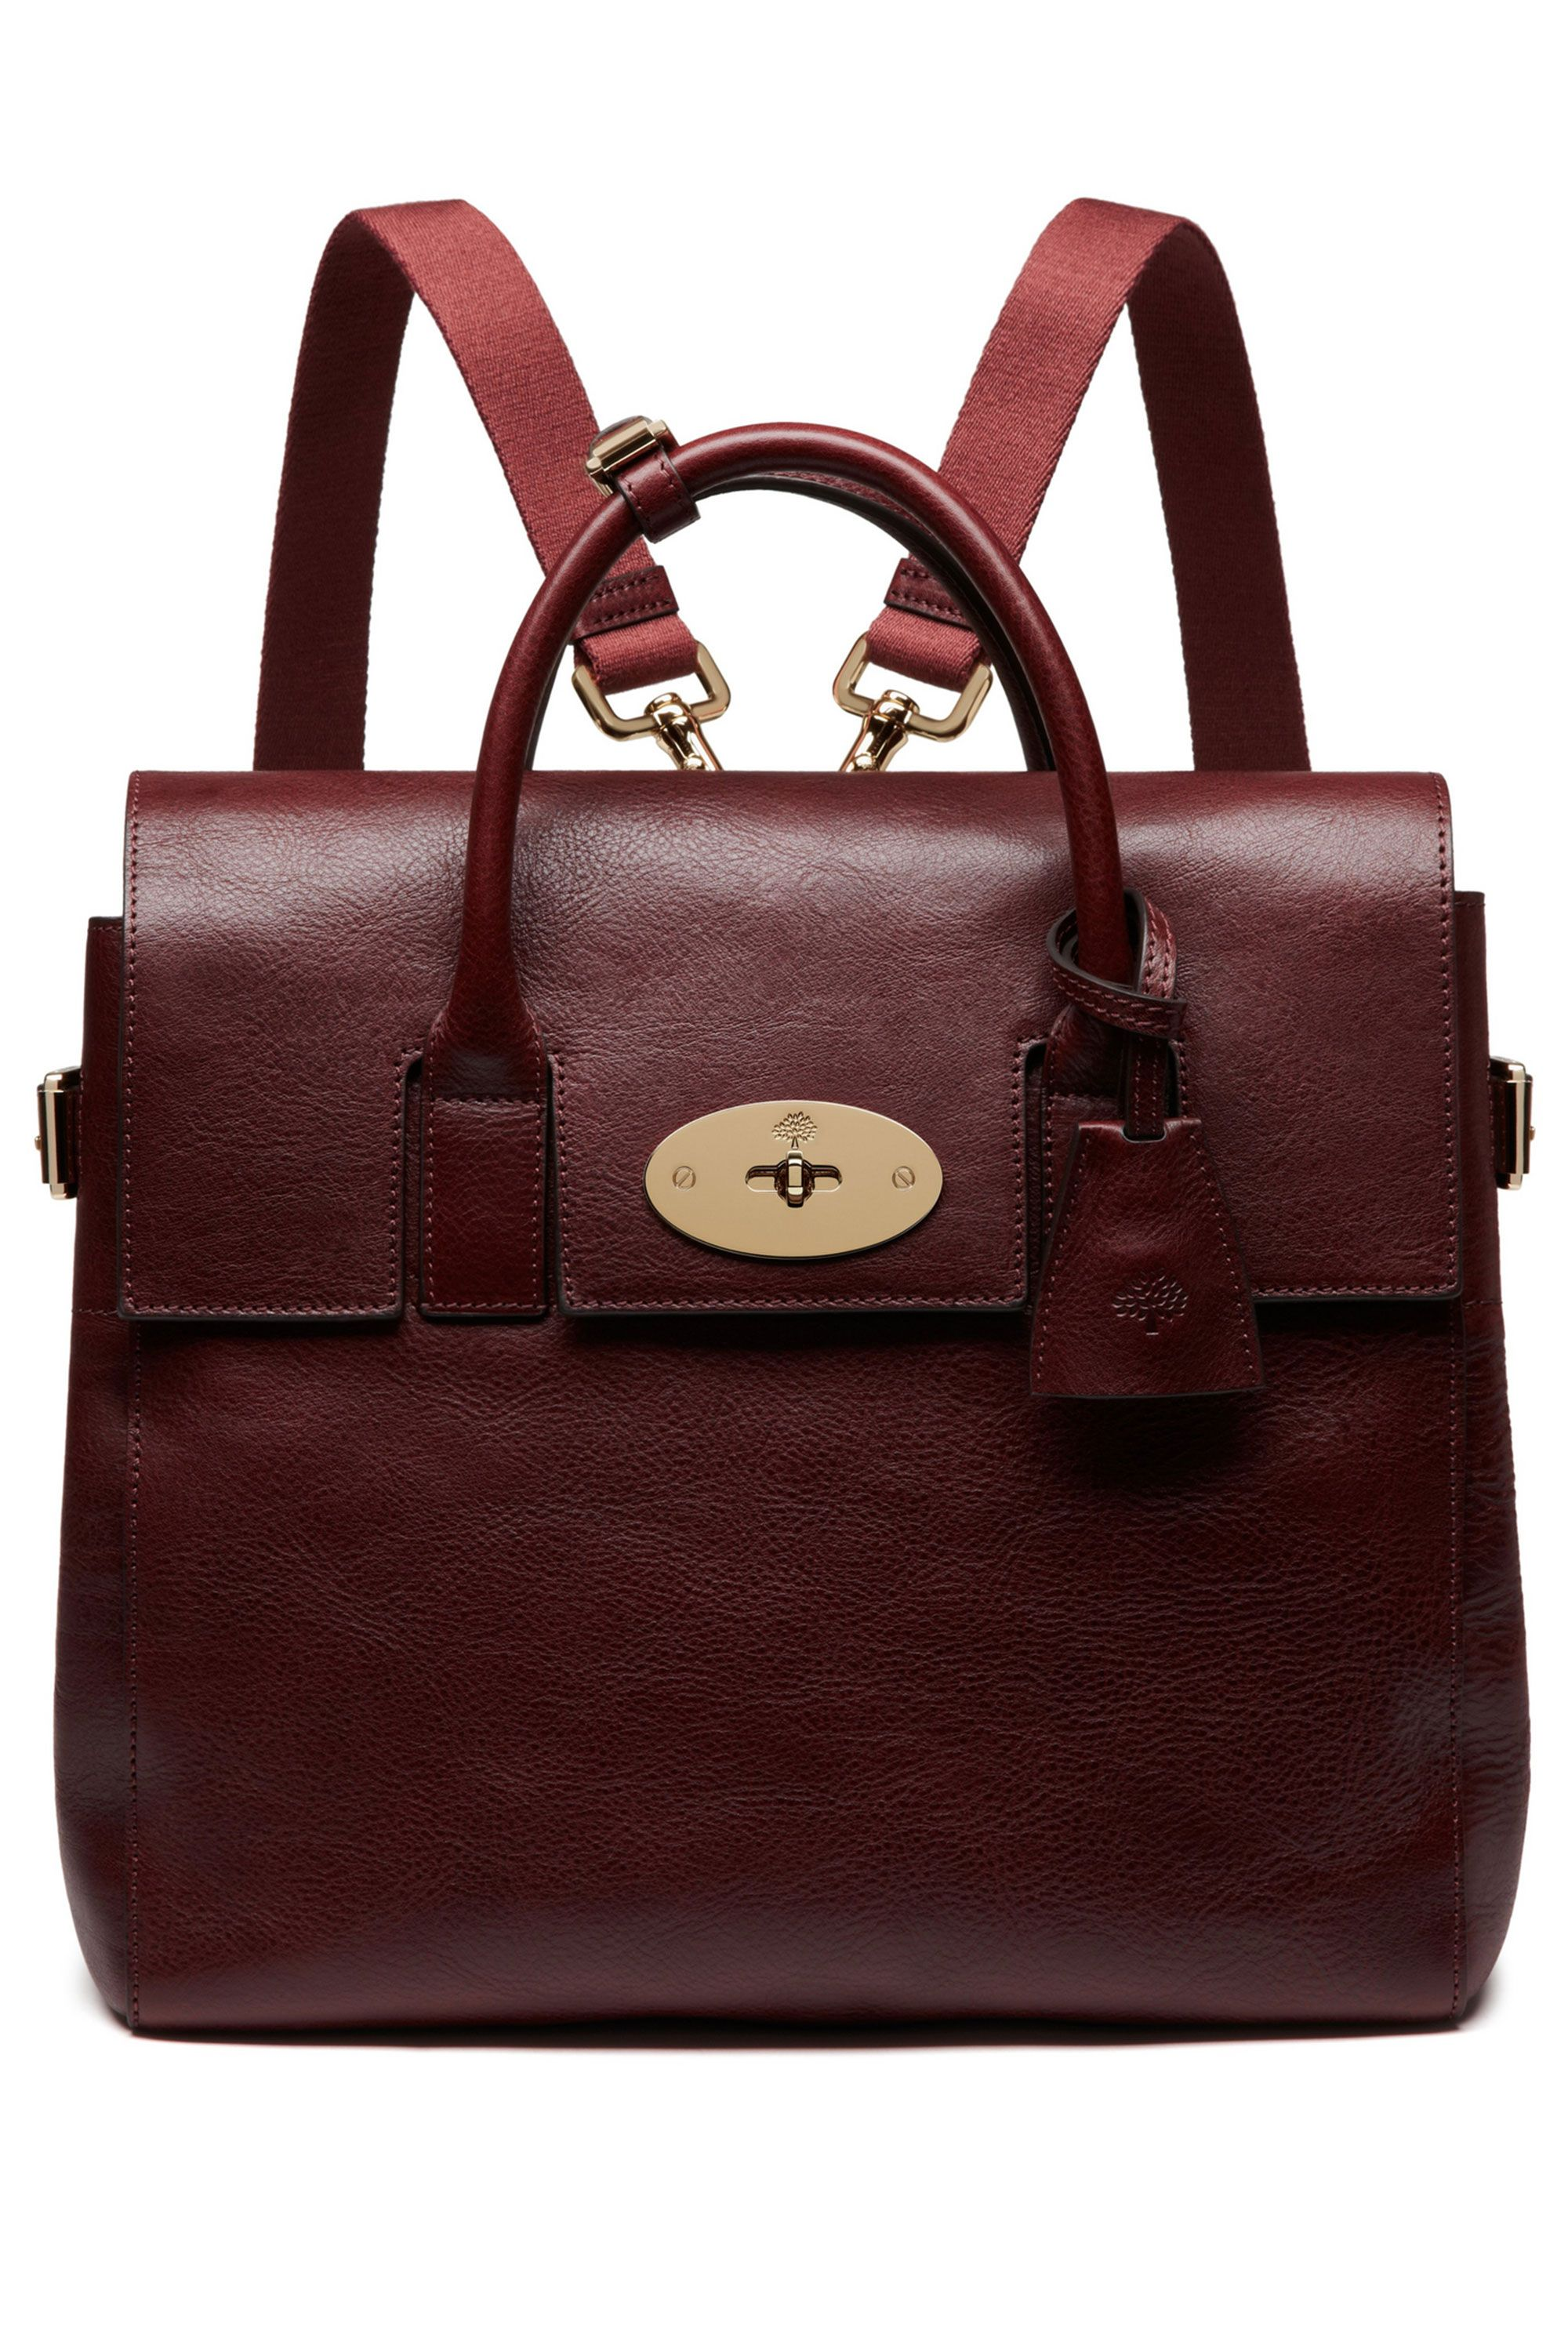 10 Of The Most Fashionable Backpacks To Buy This Season Mulberry